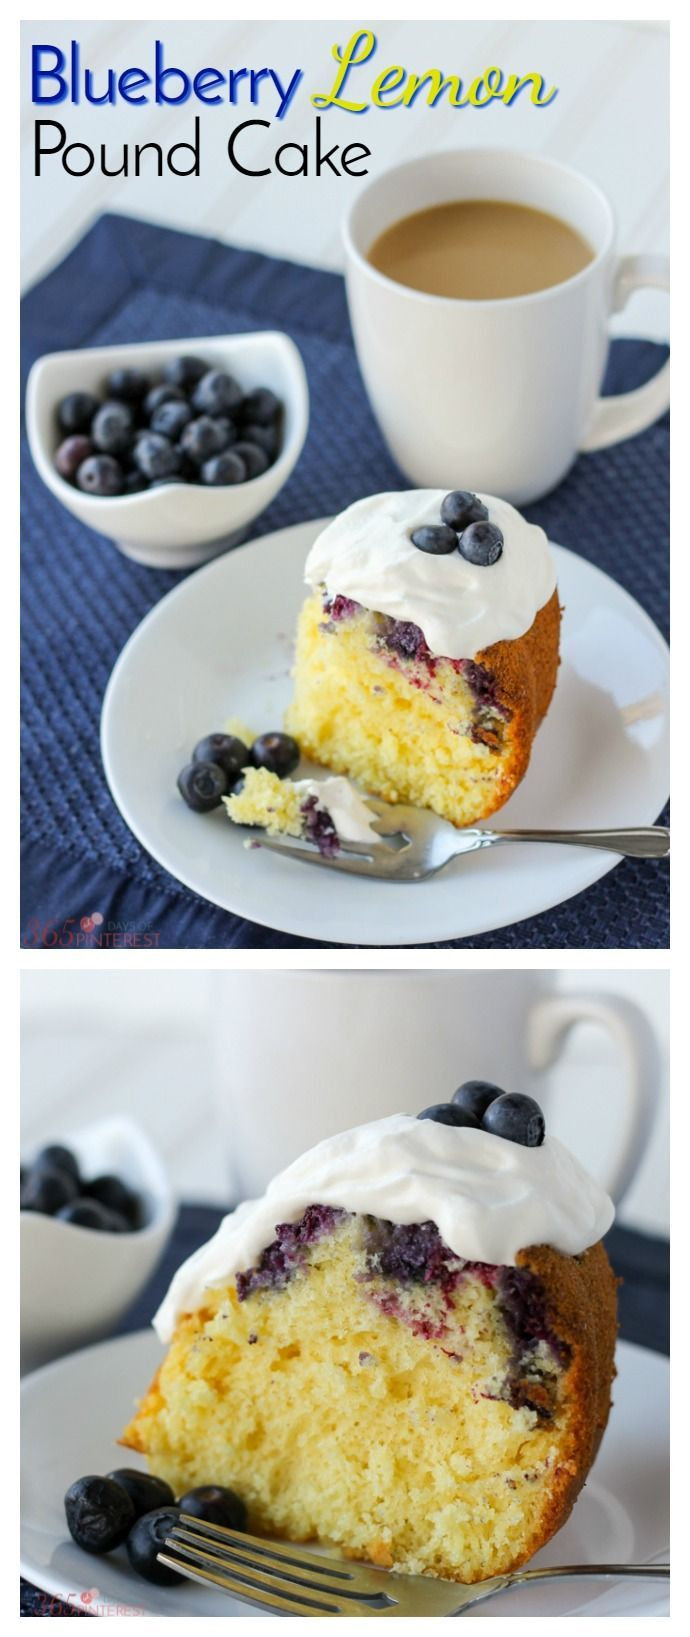 This Blueberry Lemon Pound Cake Is Quick And Easy Because It Starts